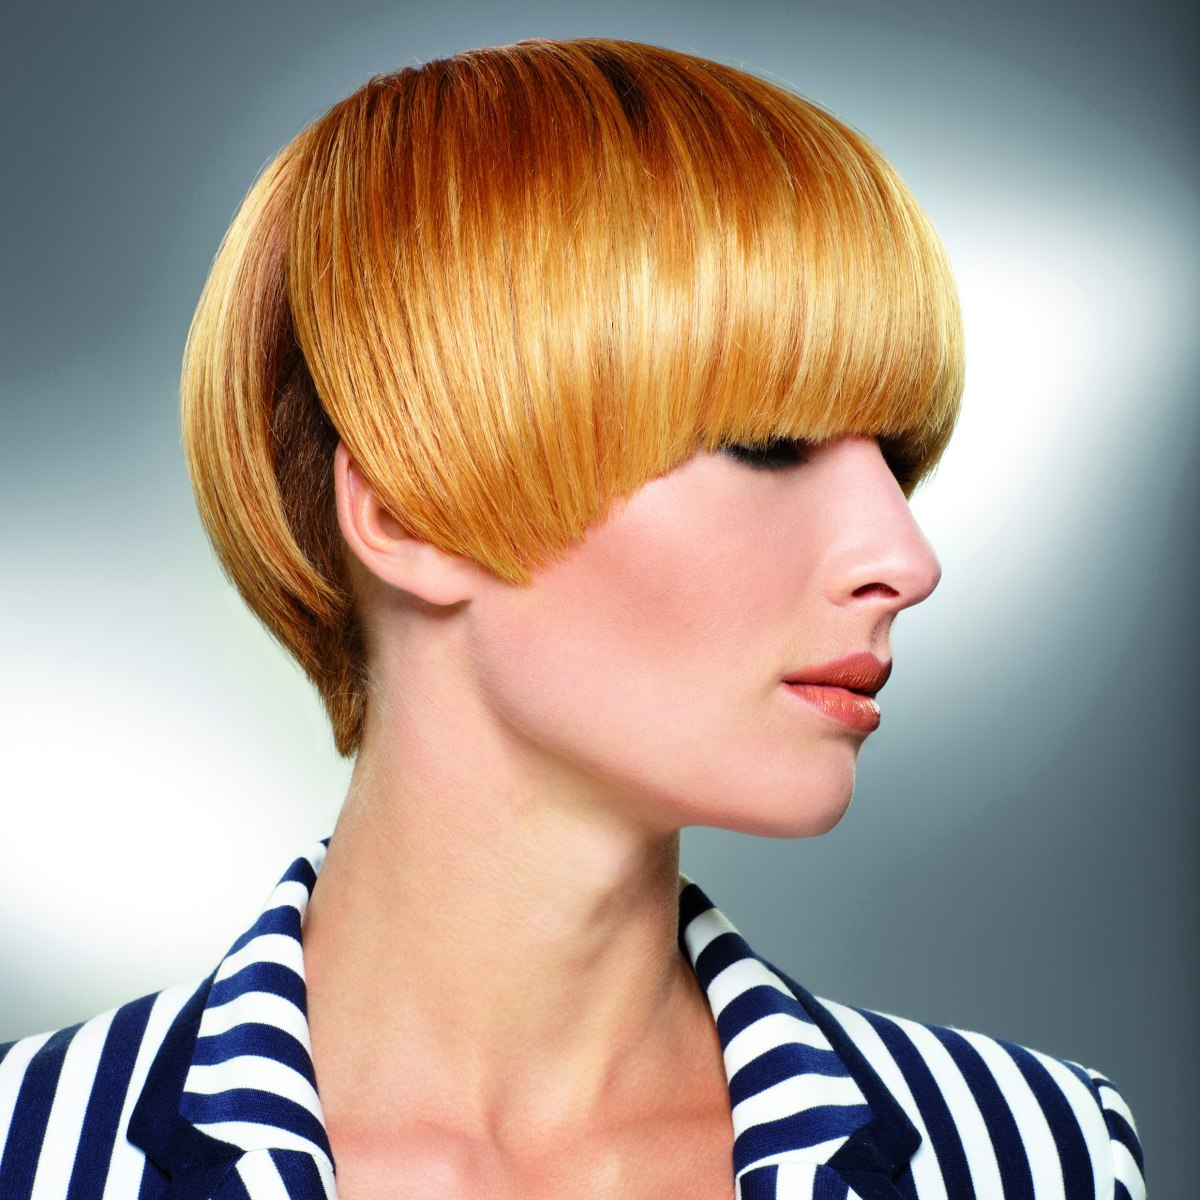 short bowl haircut with a fringe that throws a shadow over the eyes